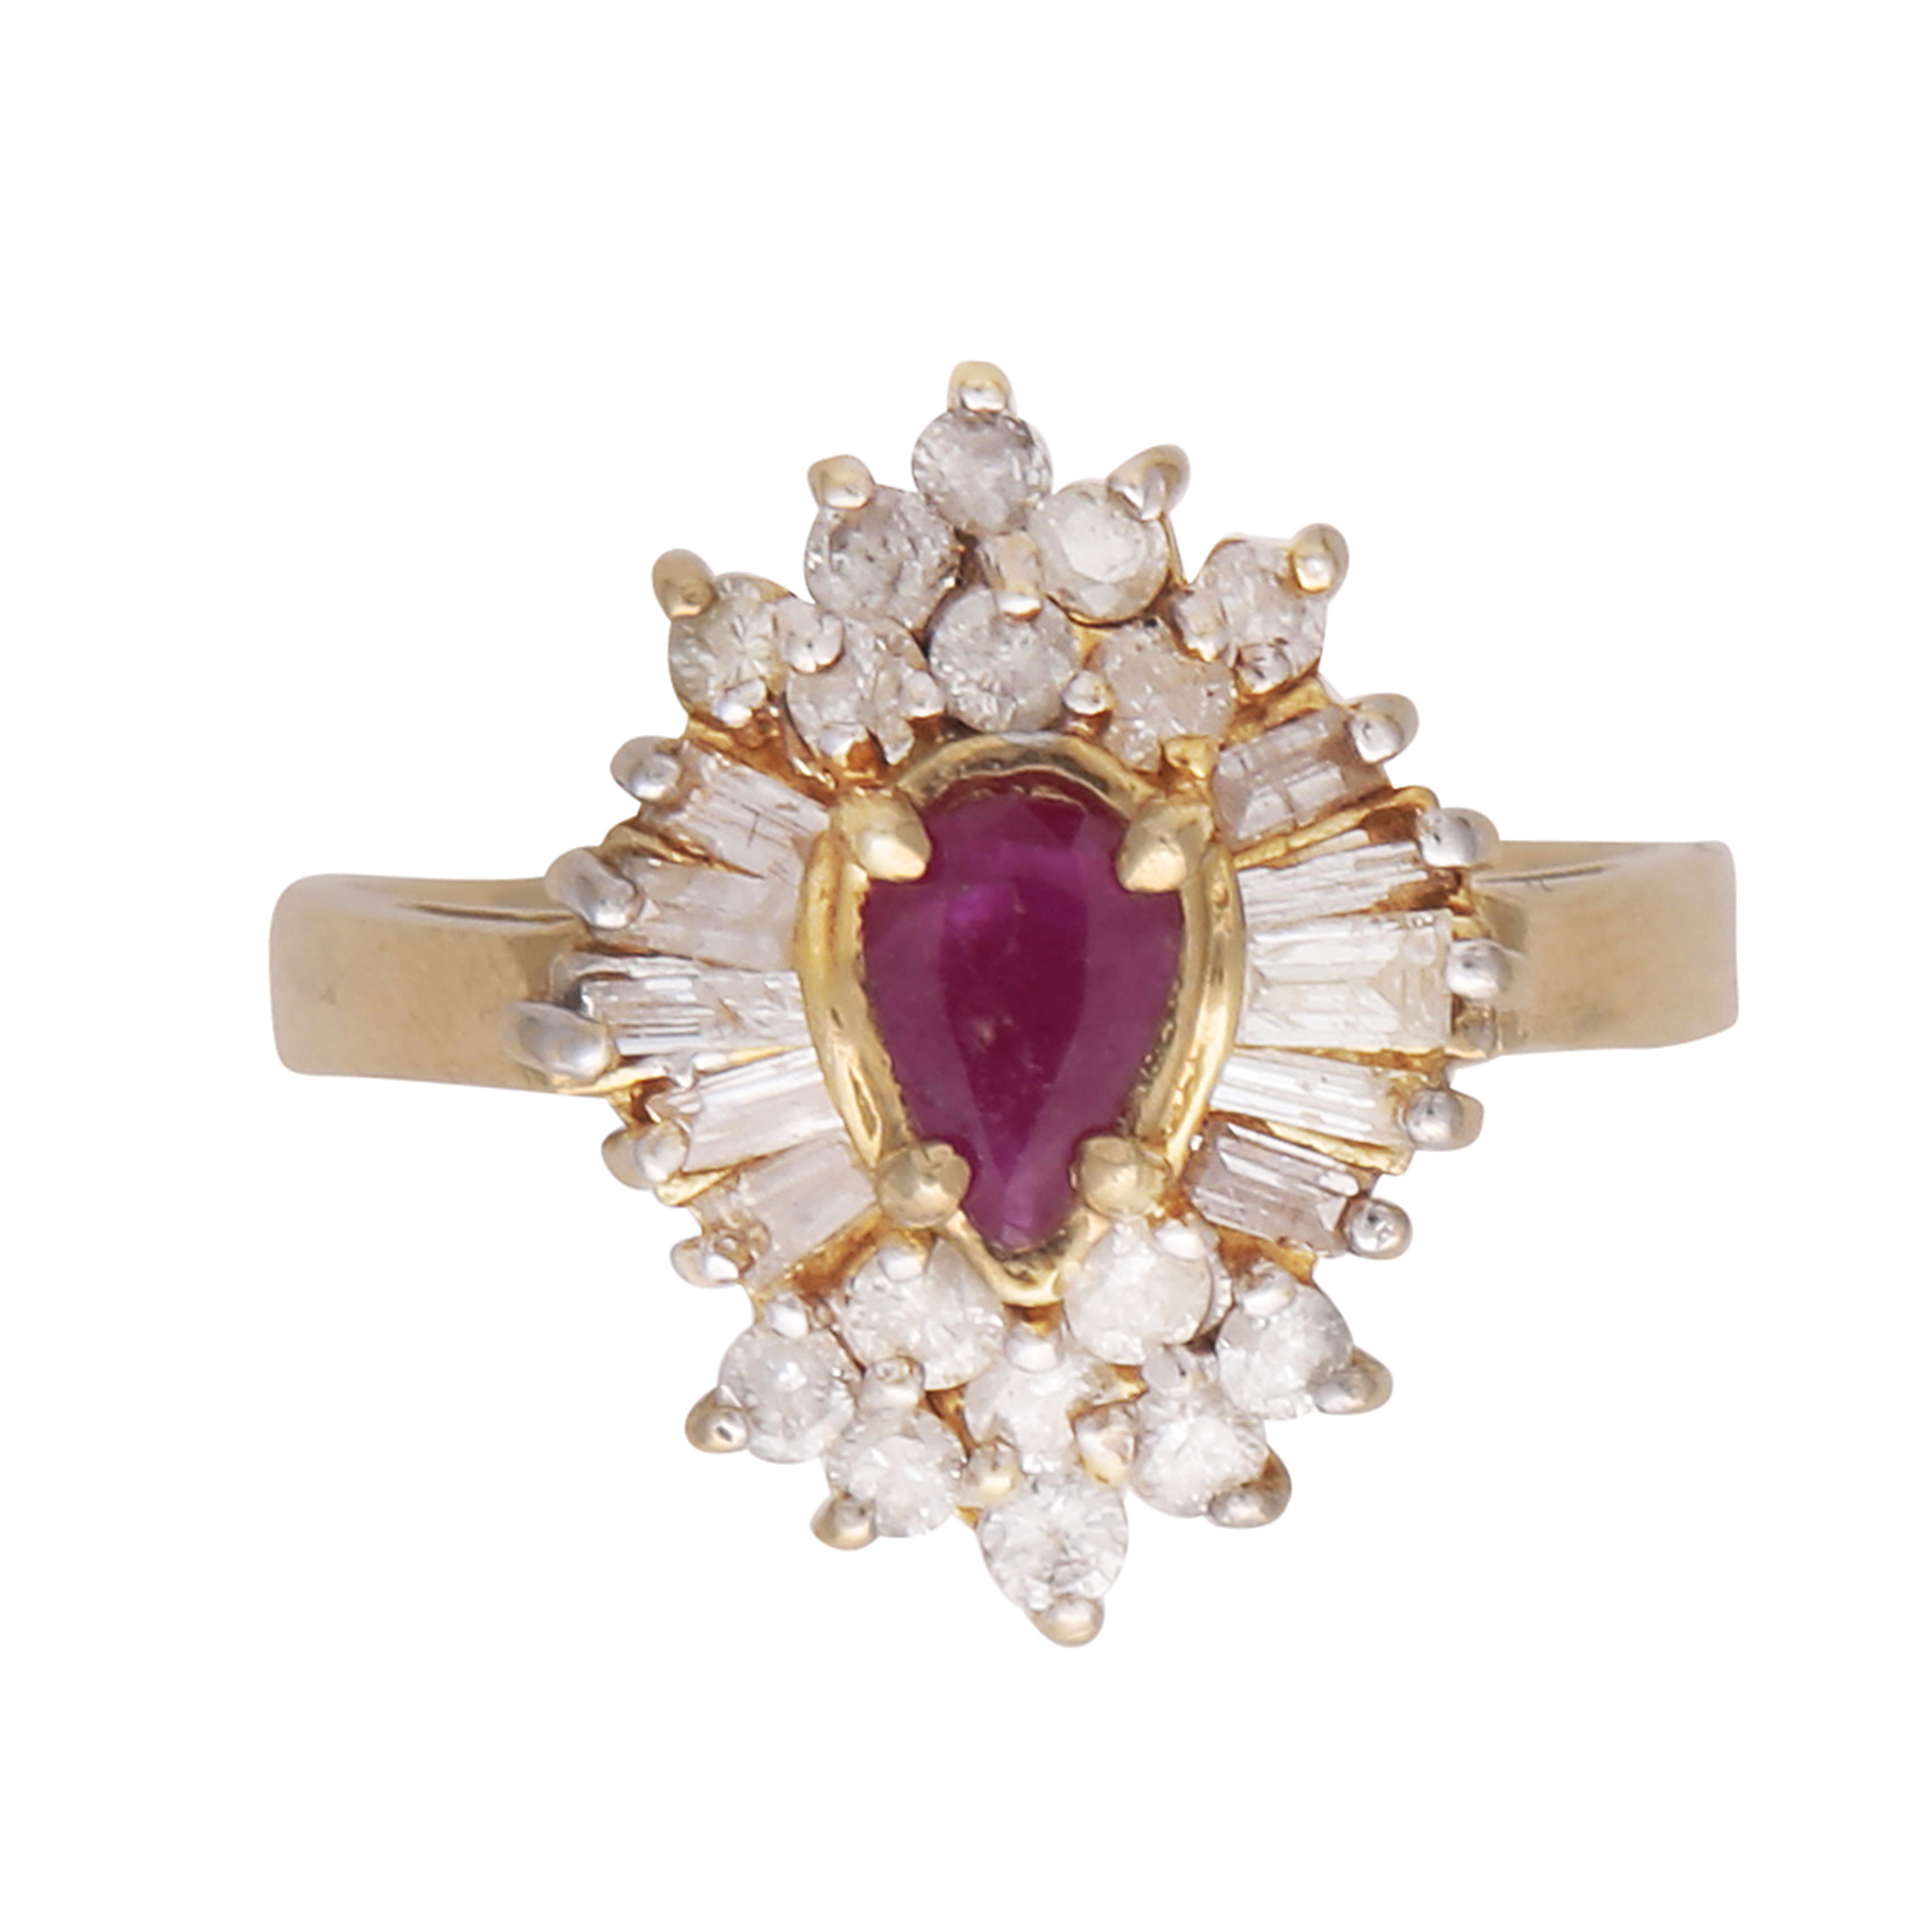 Los 189 - A ruby and diamond cluster ring in 14ct yellow gold the pear shaped ruby claw set, surrounded by a